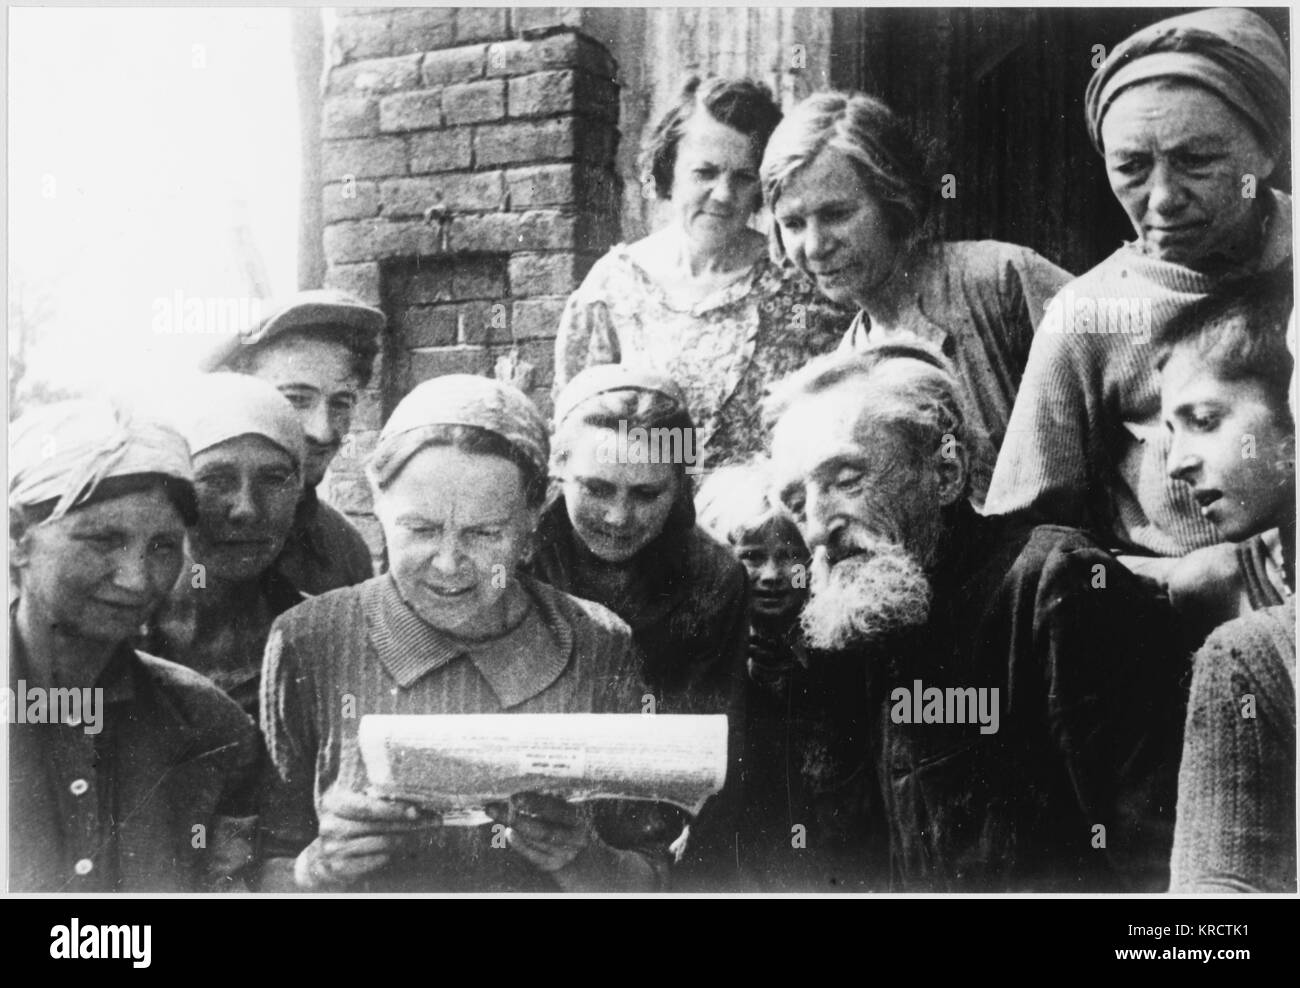 Civilians read news of the war. - Stock Image